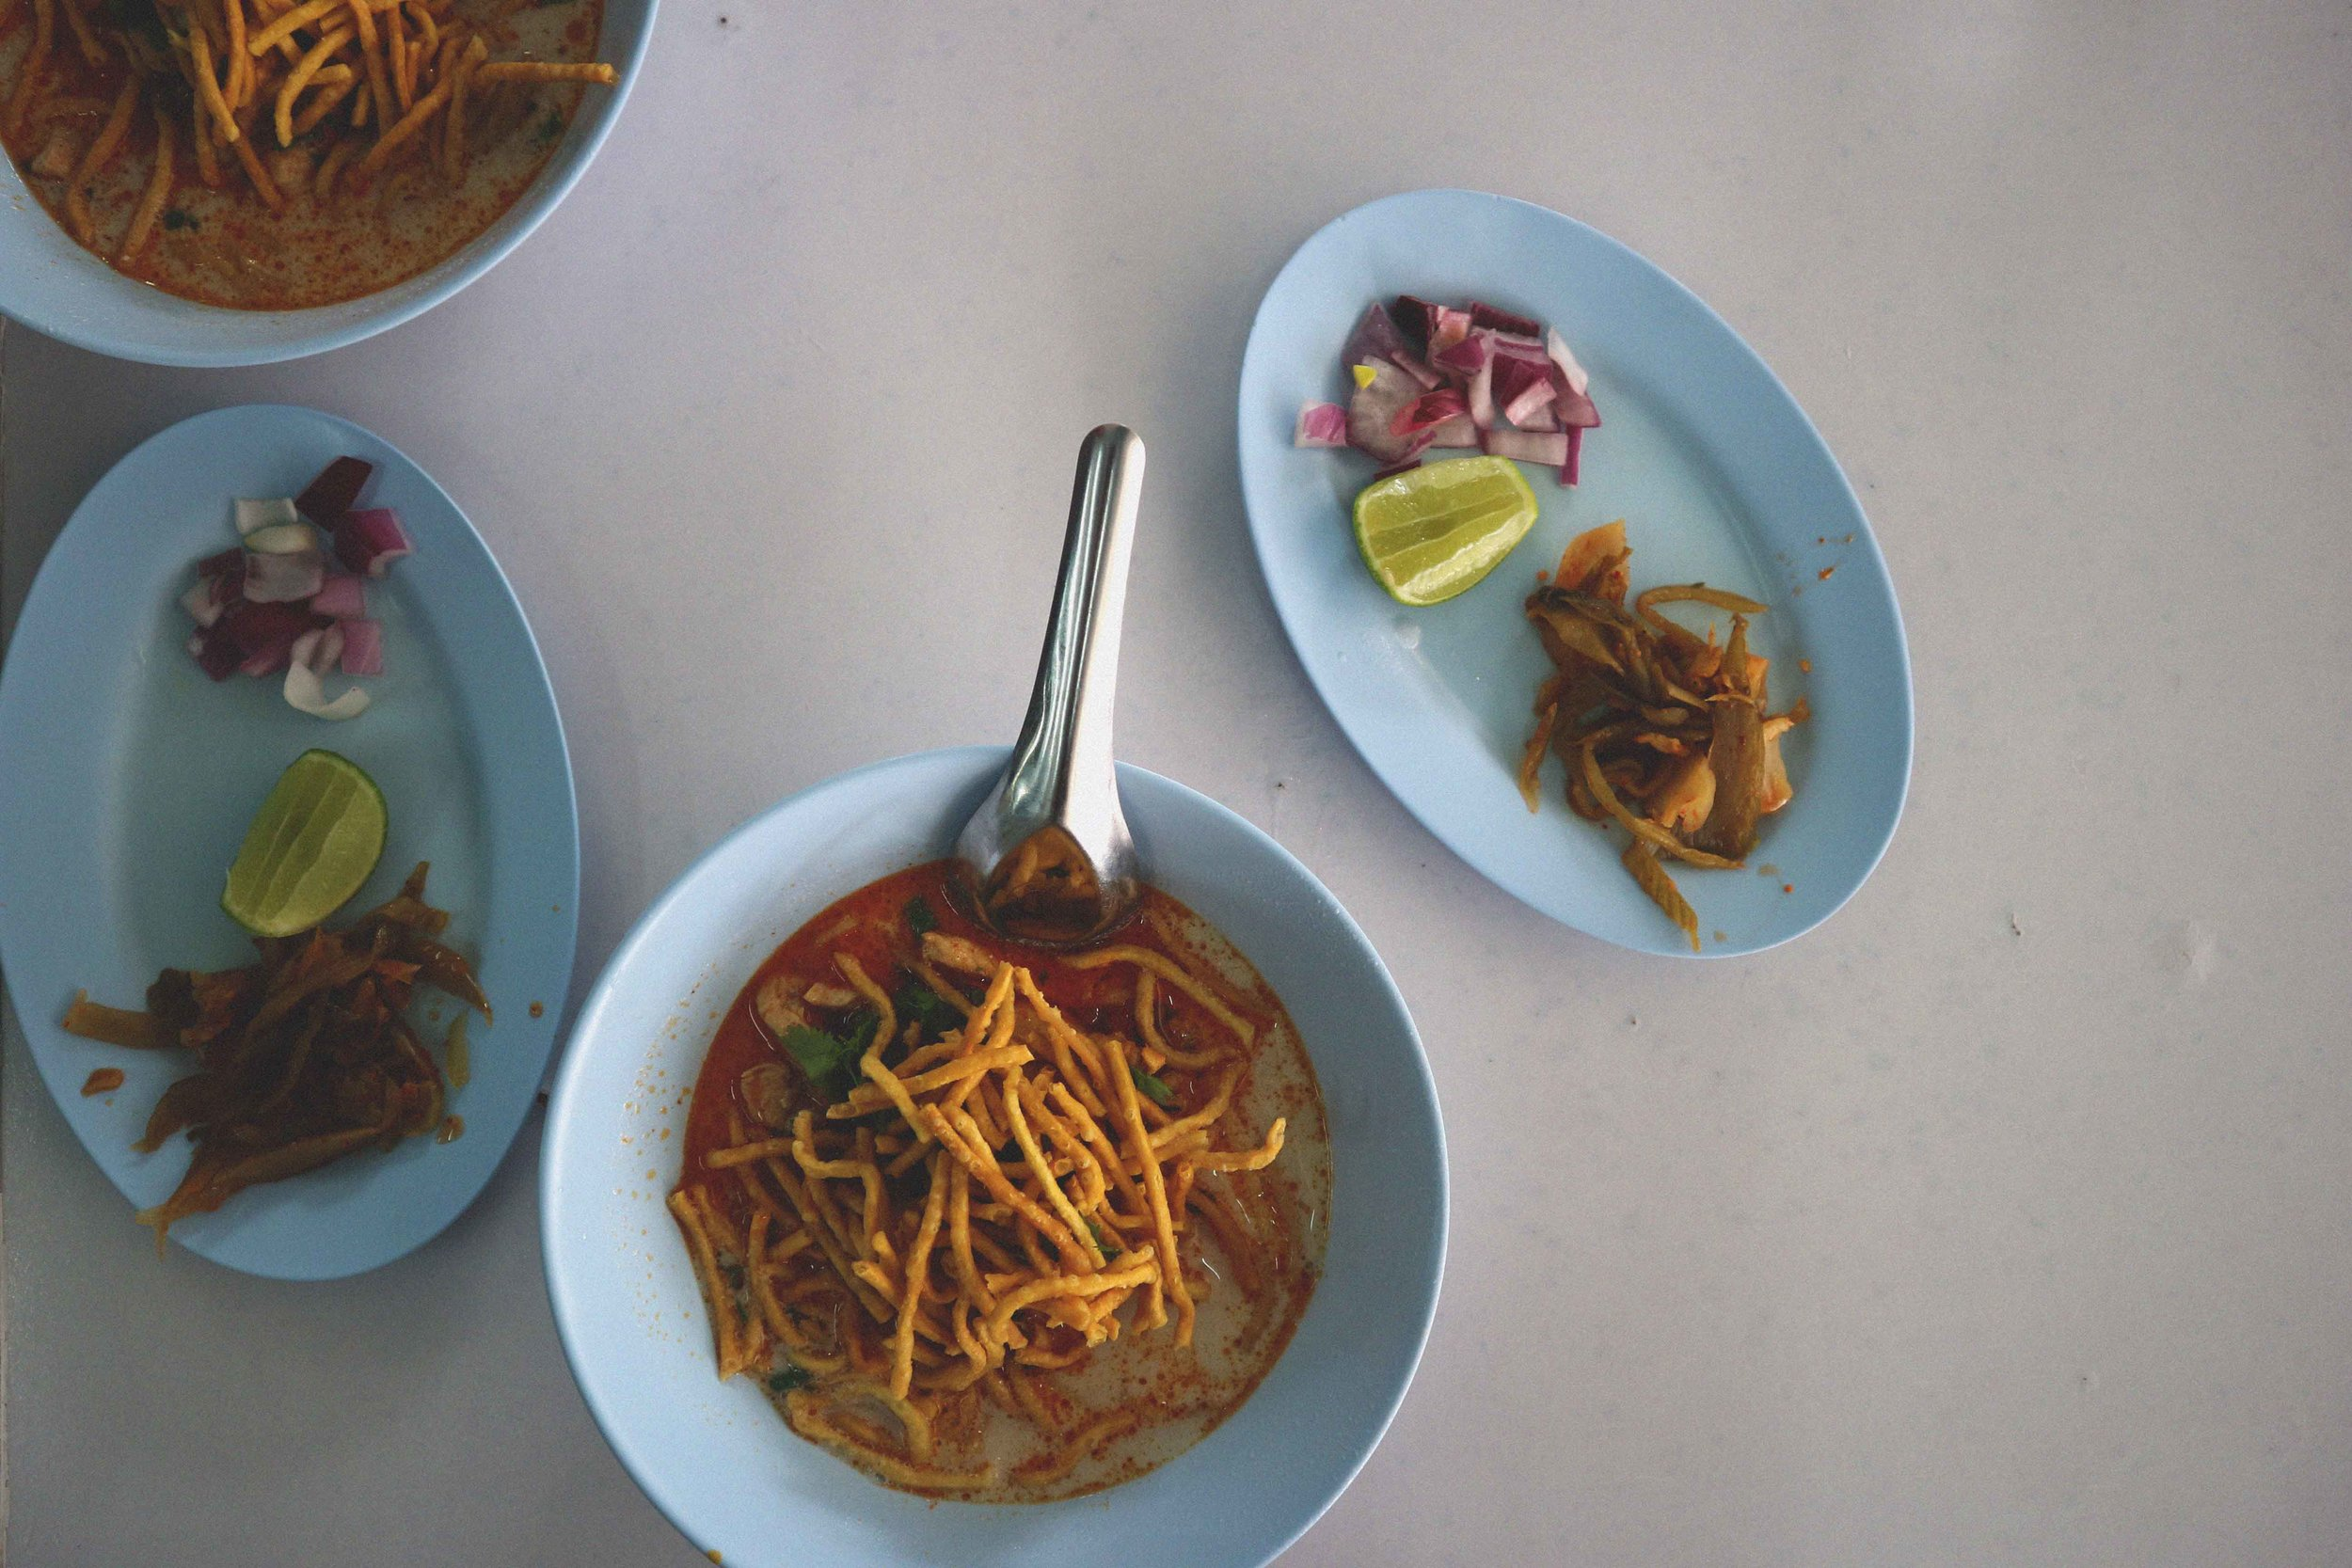 Northern Thailand's Khao Soi - a dish inspired by Burmese cuisine.